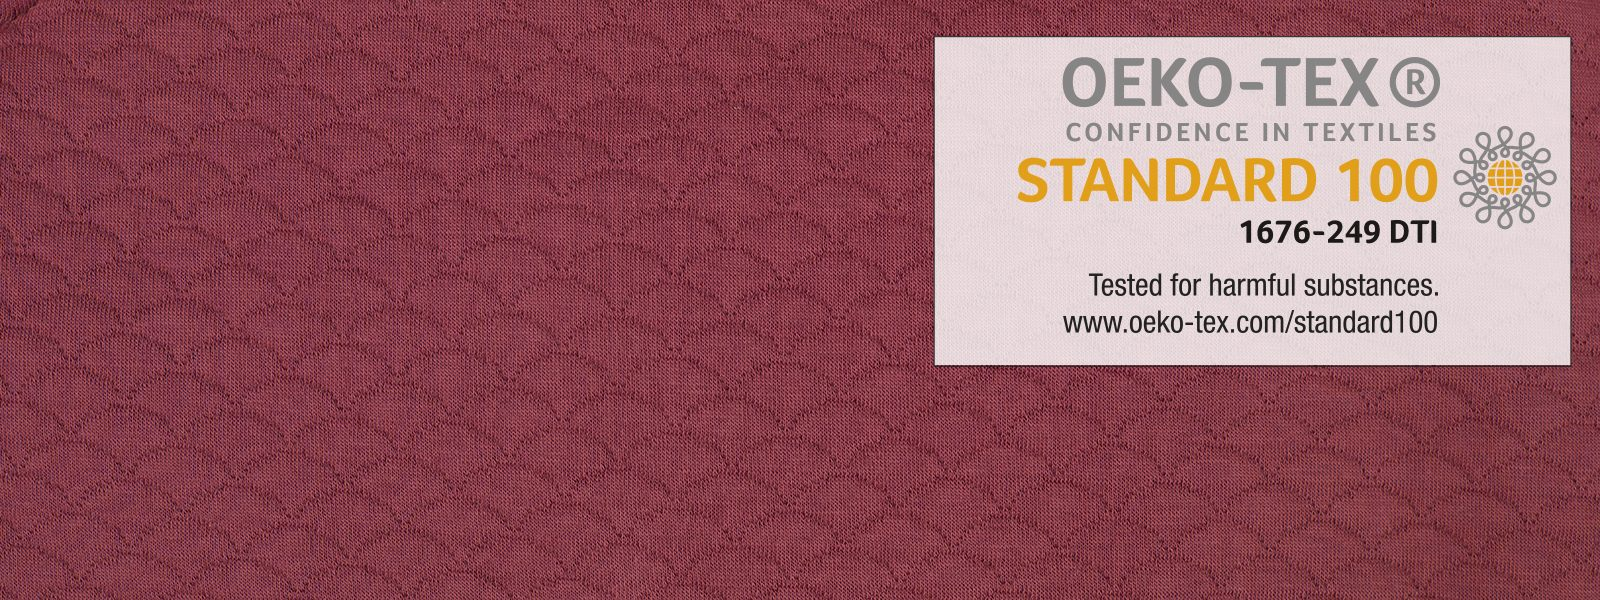 Textile safety and OEKO-TEX® certification